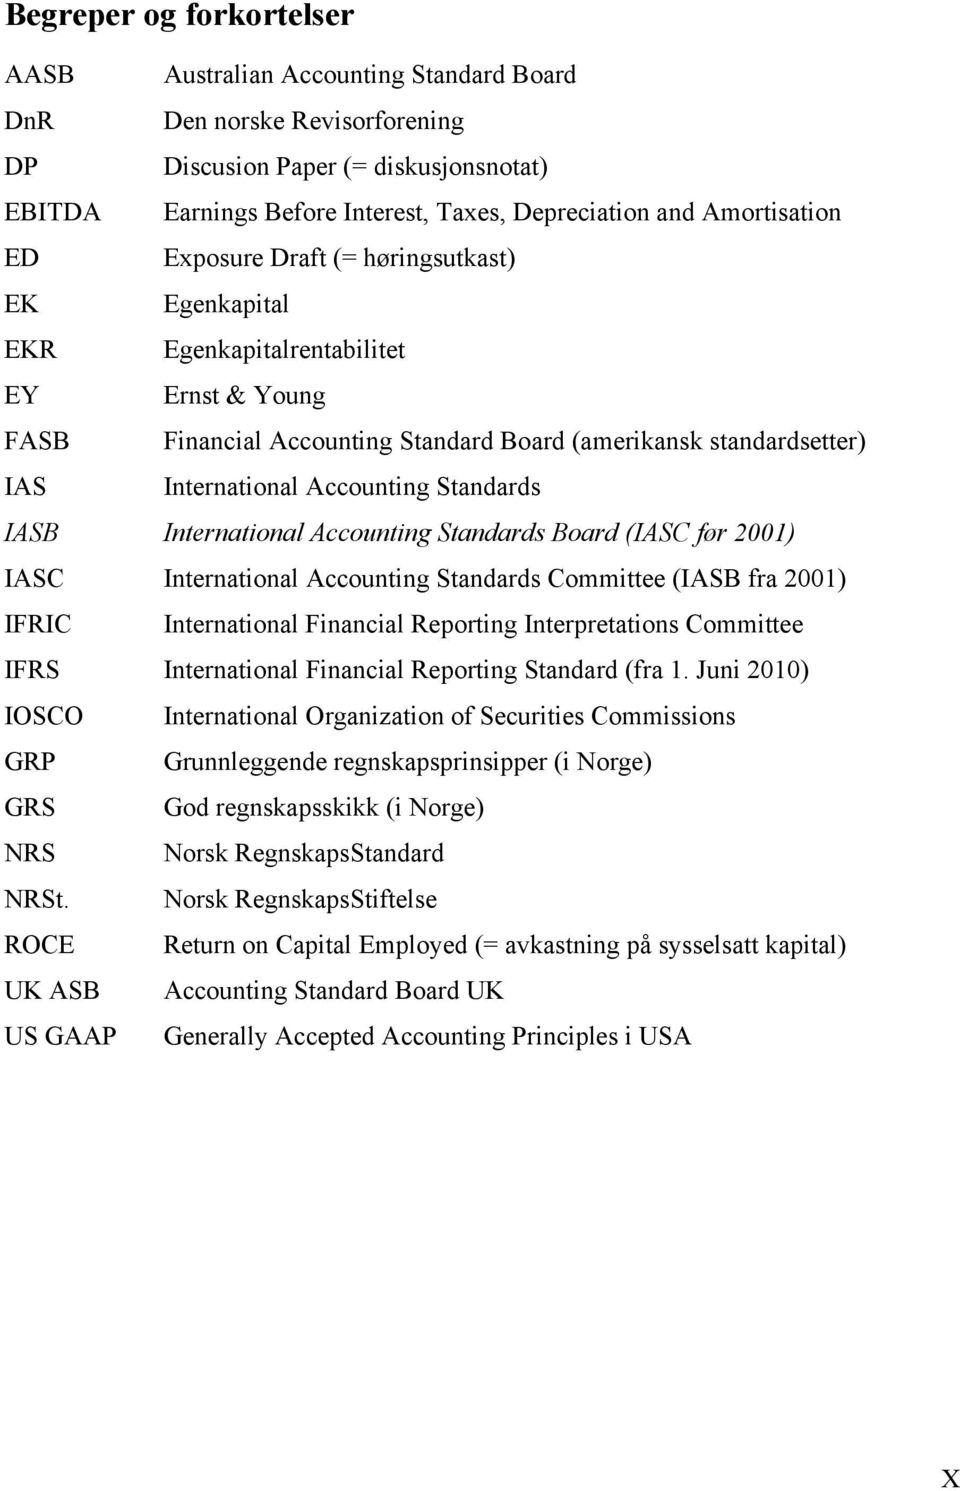 Accounting Standards IASB International Accounting Standards Board (IASC før 2001) IASC International Accounting Standards Committee (IASB fra 2001) IFRIC International Financial Reporting